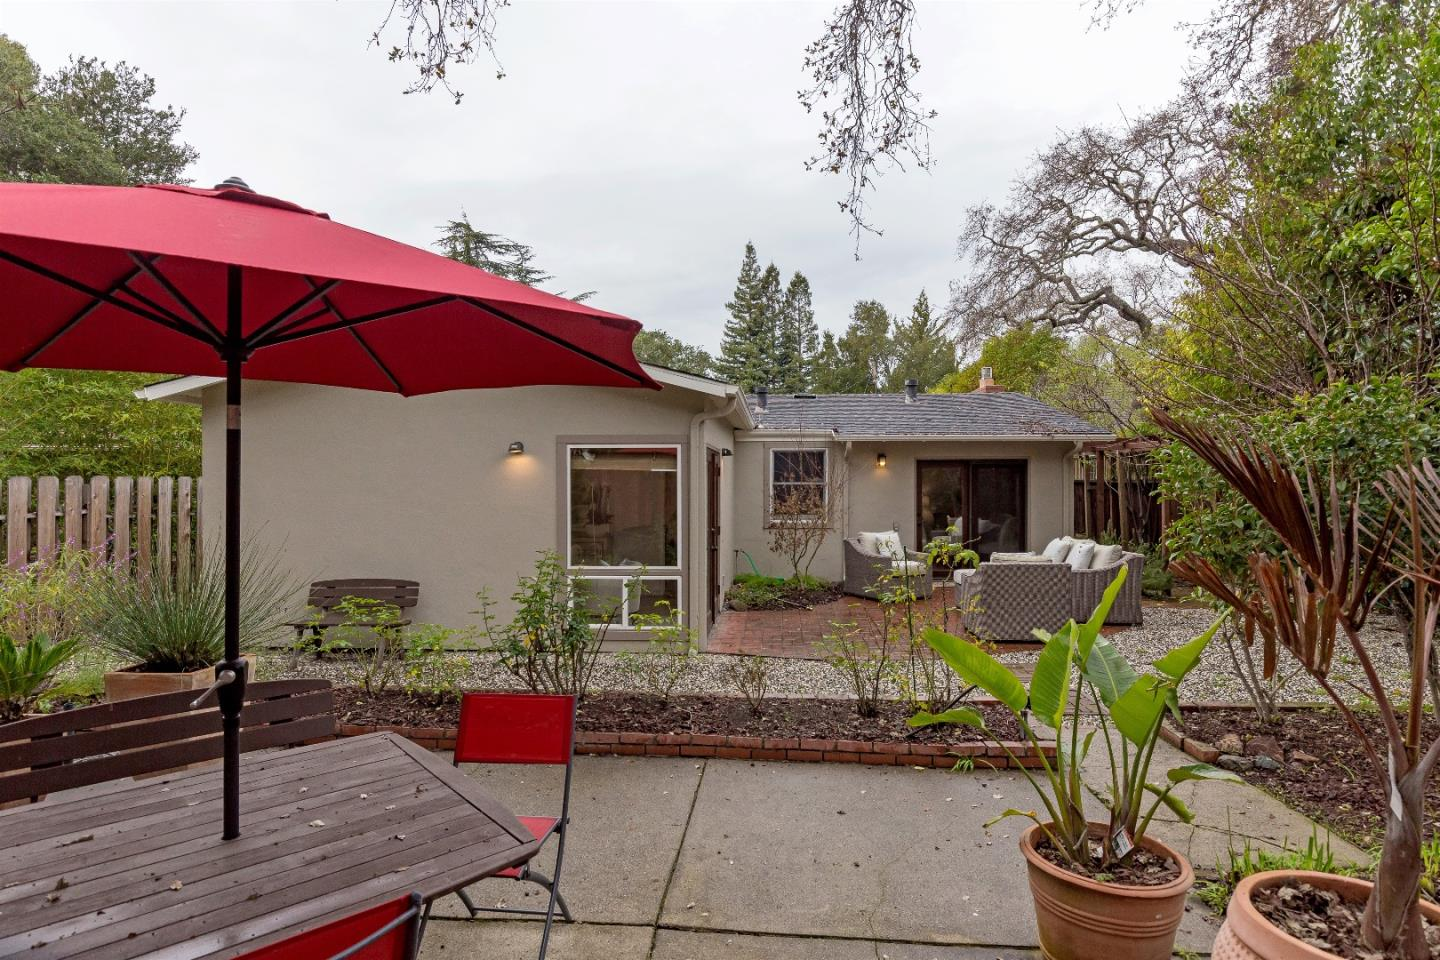 192 Spruce Avenue Menlo Park, CA 94025 - MLS #: ML81735062